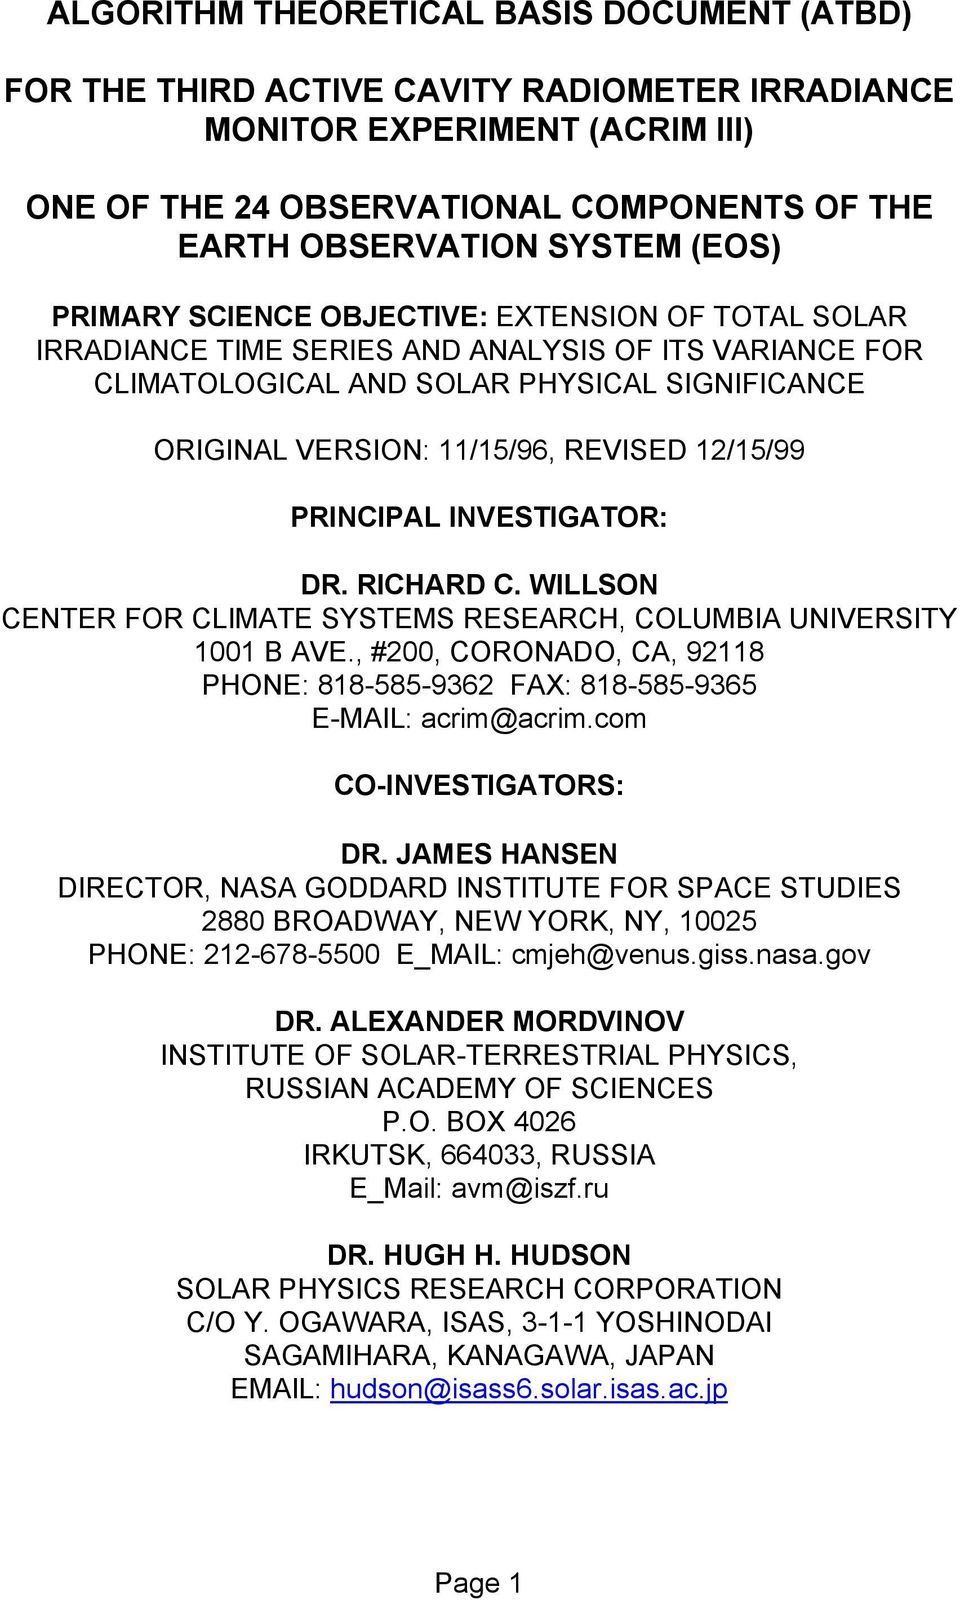 12/15/99 PRINCIPAL INVESTIGATOR: DR. RICHARD C. WILLSON CENTER FOR CLIMATE SYSTEMS RESEARCH, COLUMBIA UNIVERSITY 1001 B AVE.